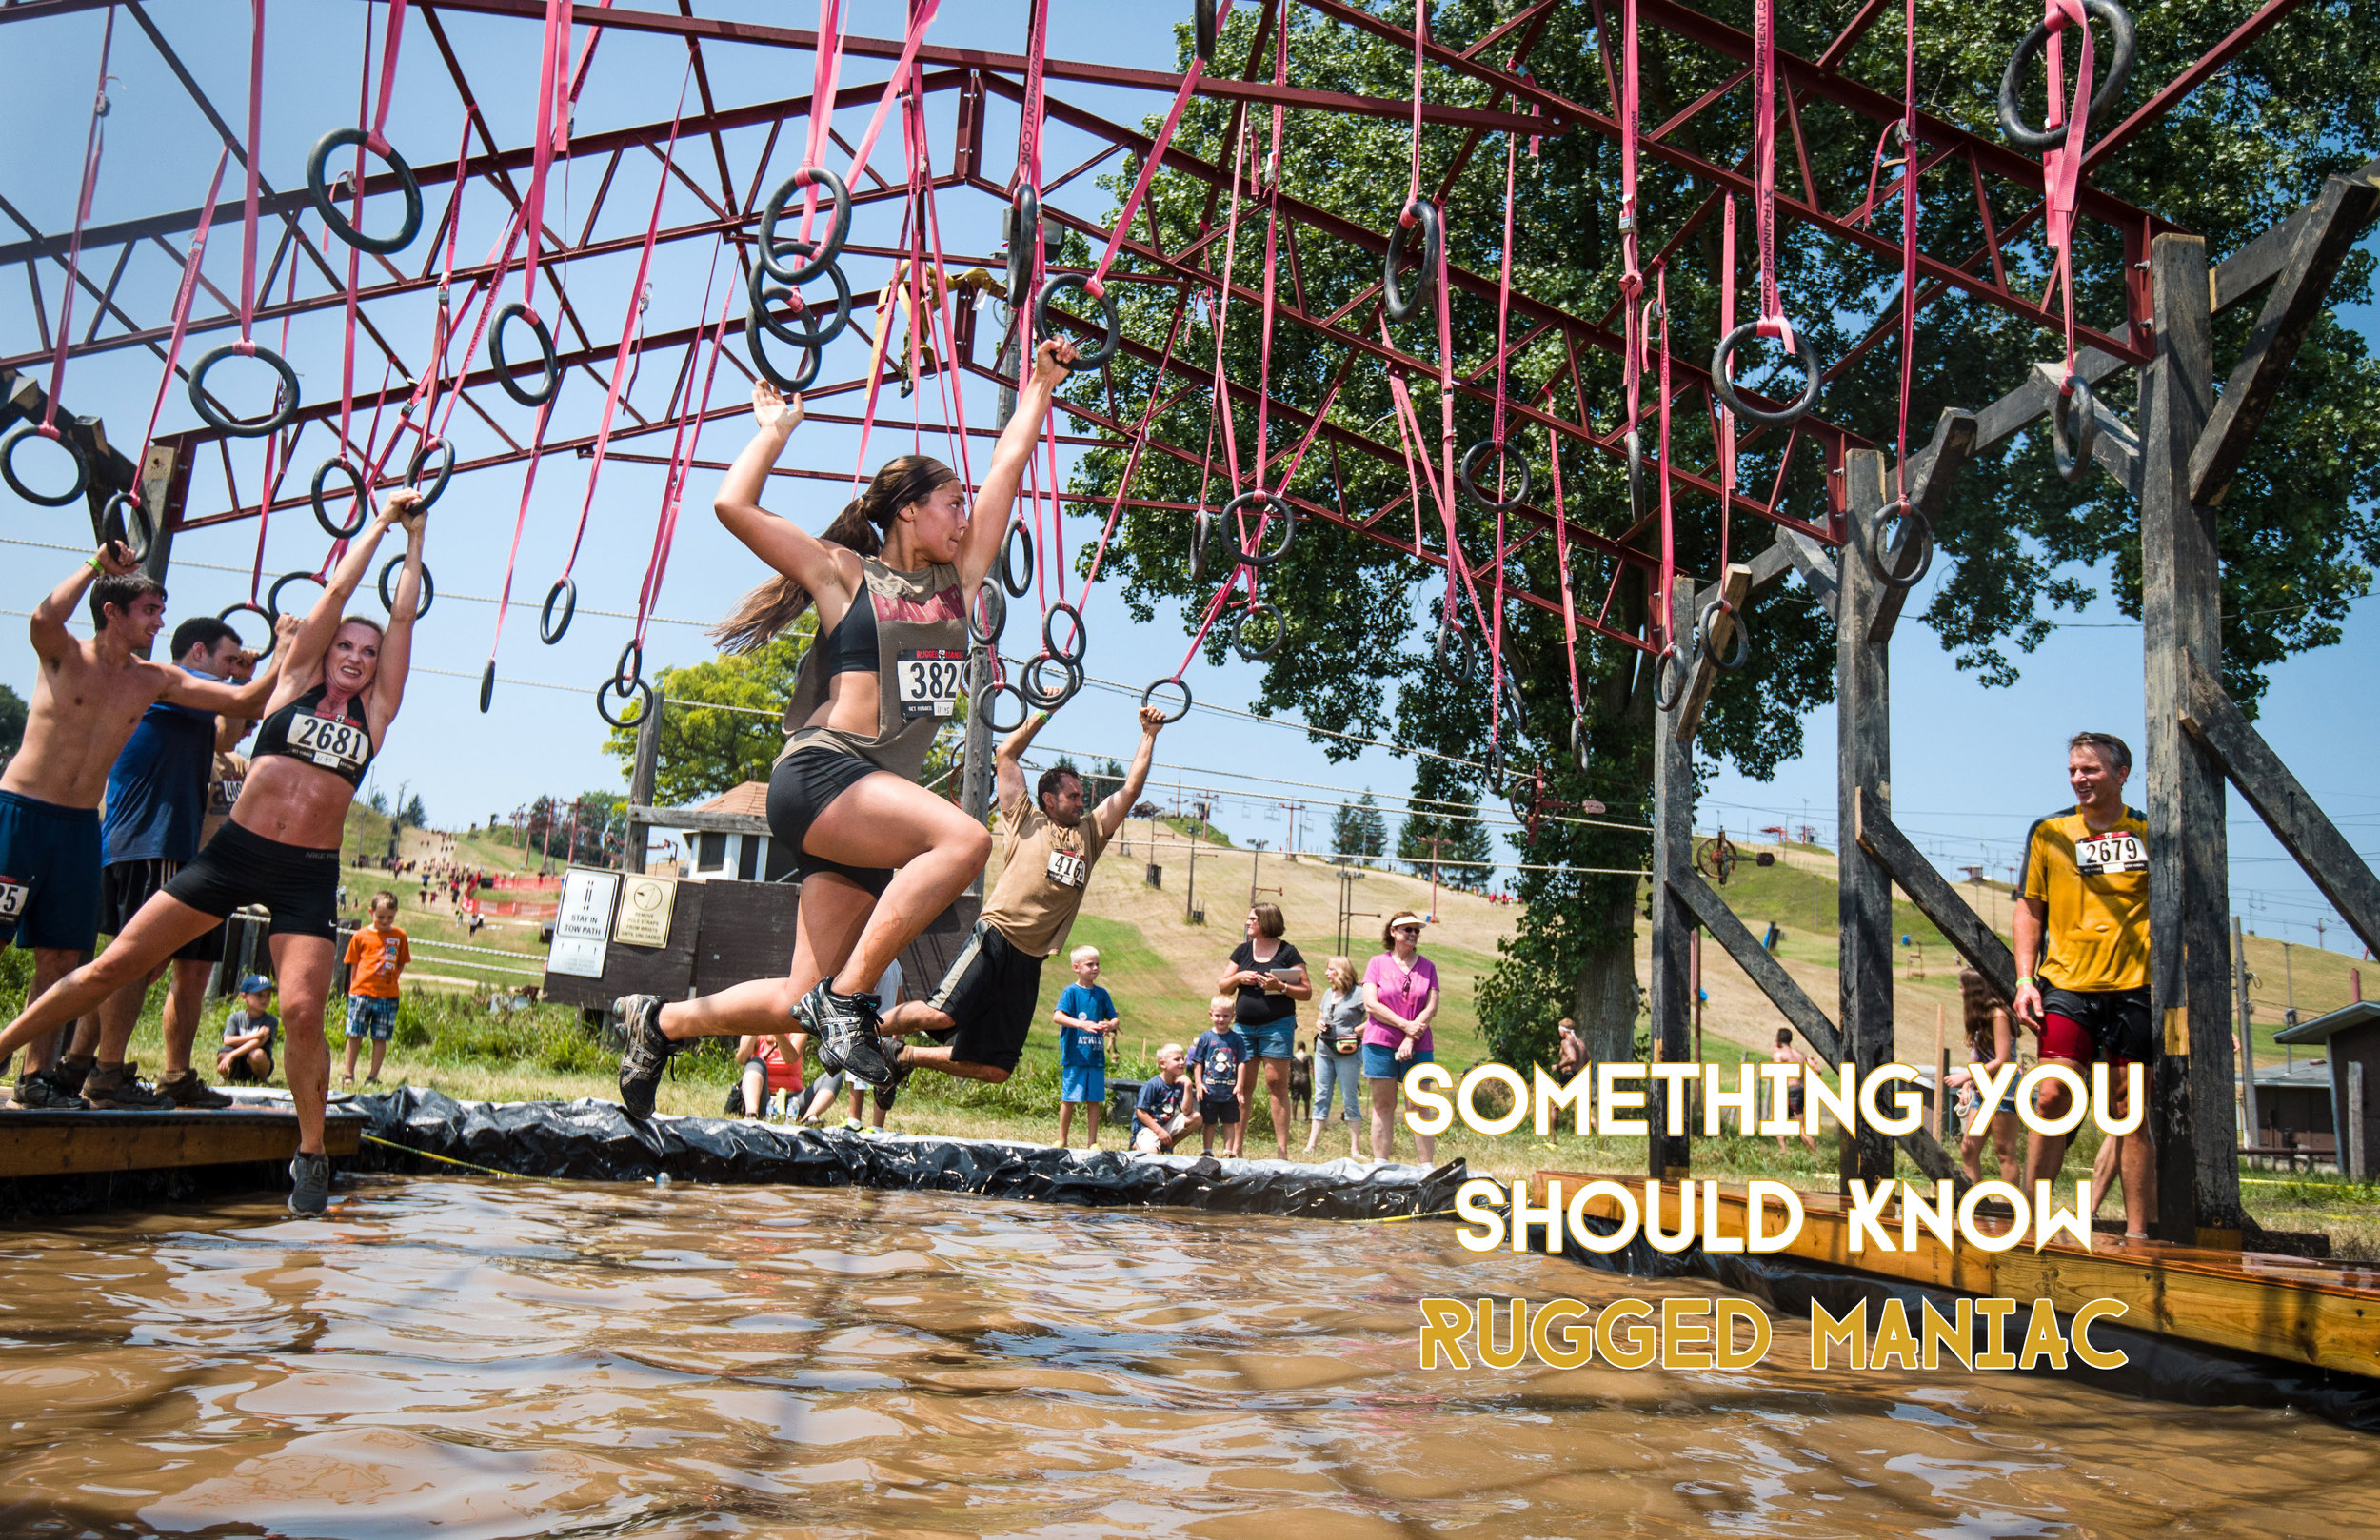 AM OCT SOMETHING YOU SHOUL KNOW RUGGED MANIAC-1.jpg